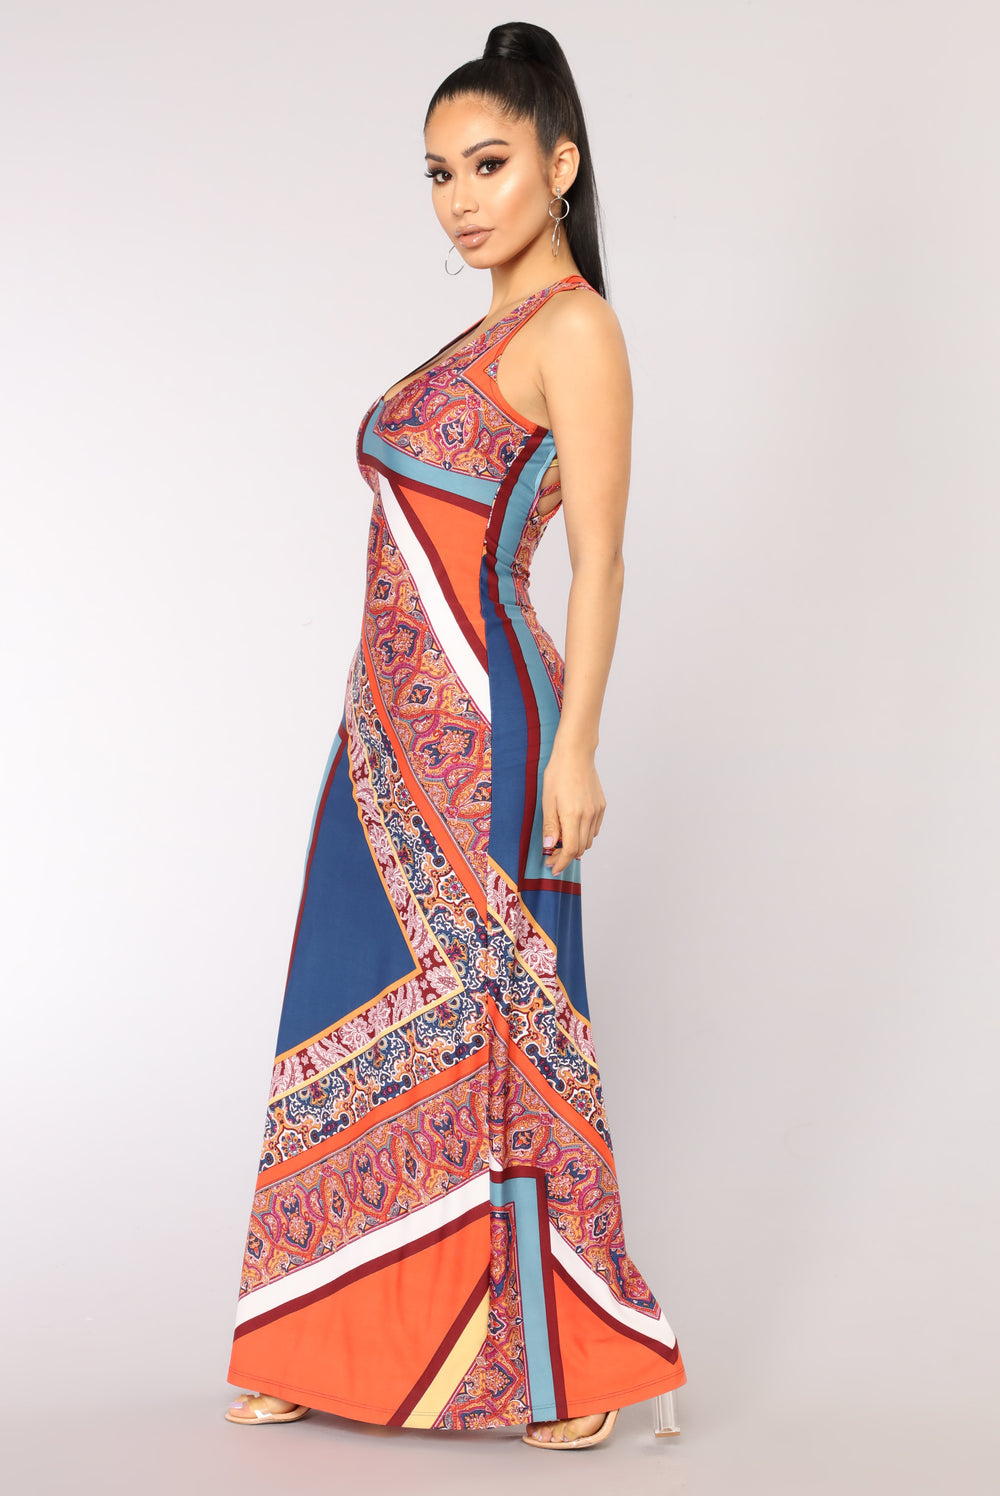 Fun Times Dress - Orange Multi